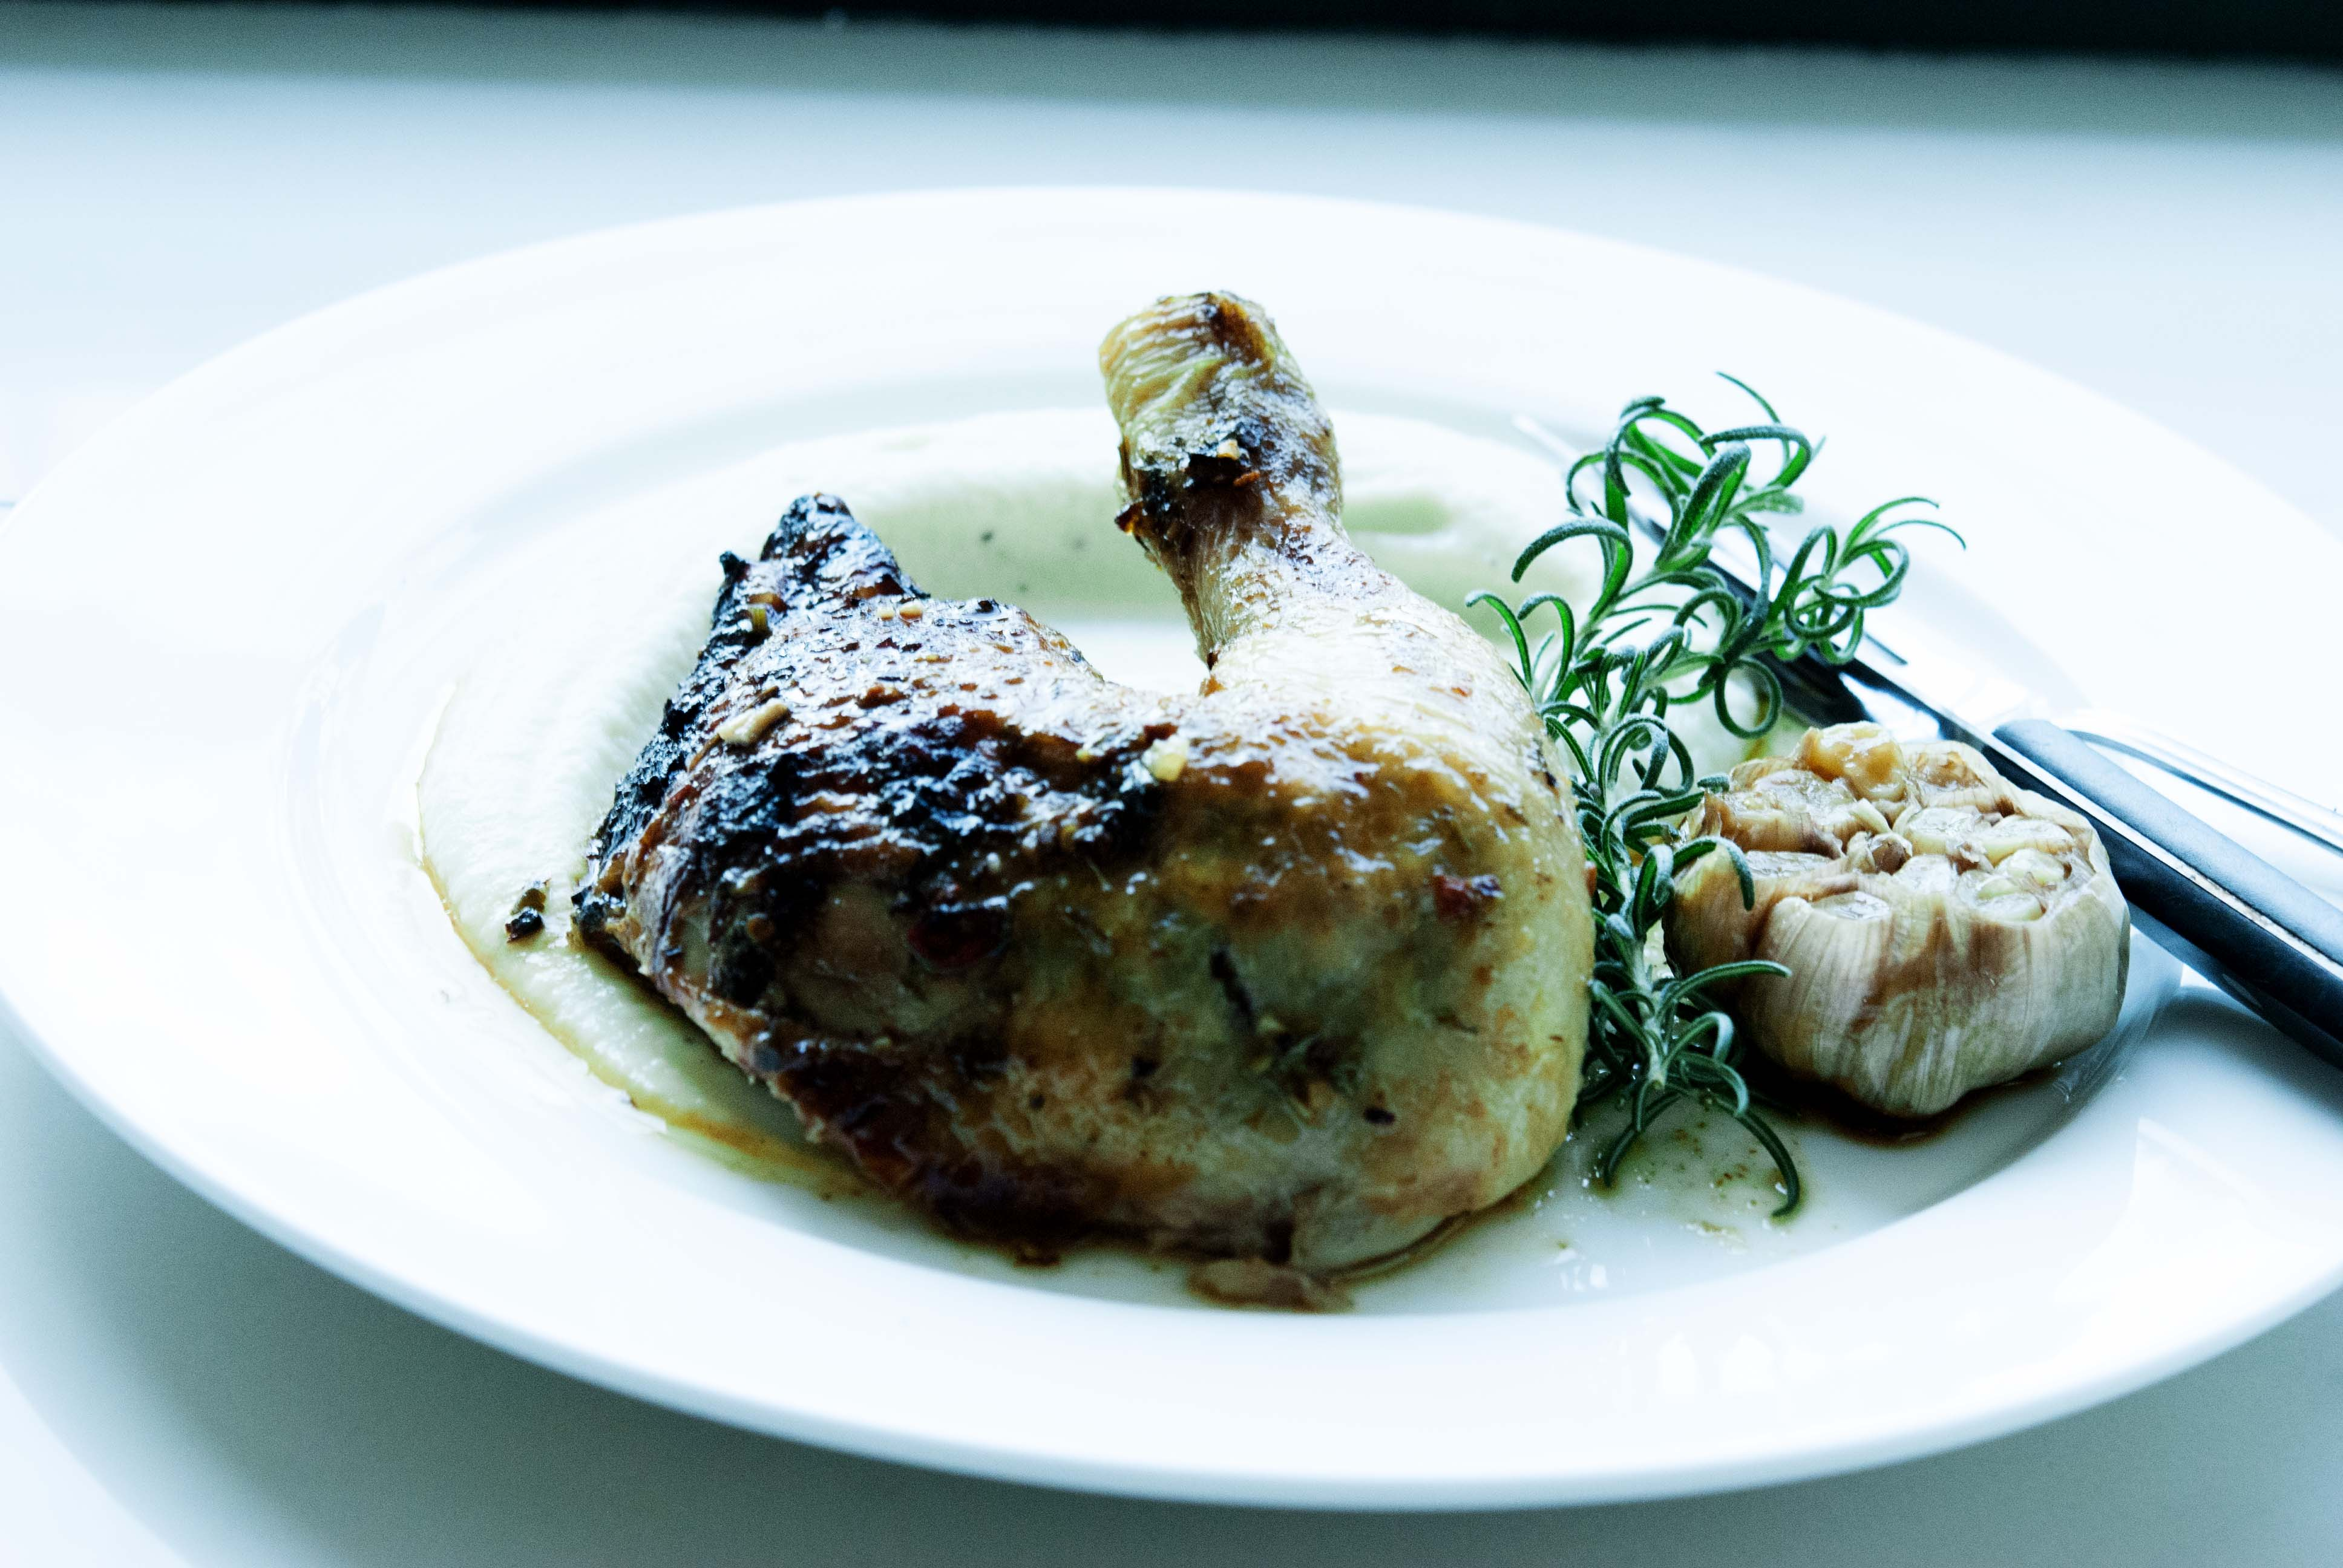 chili-lime-chicken-expatcucina12